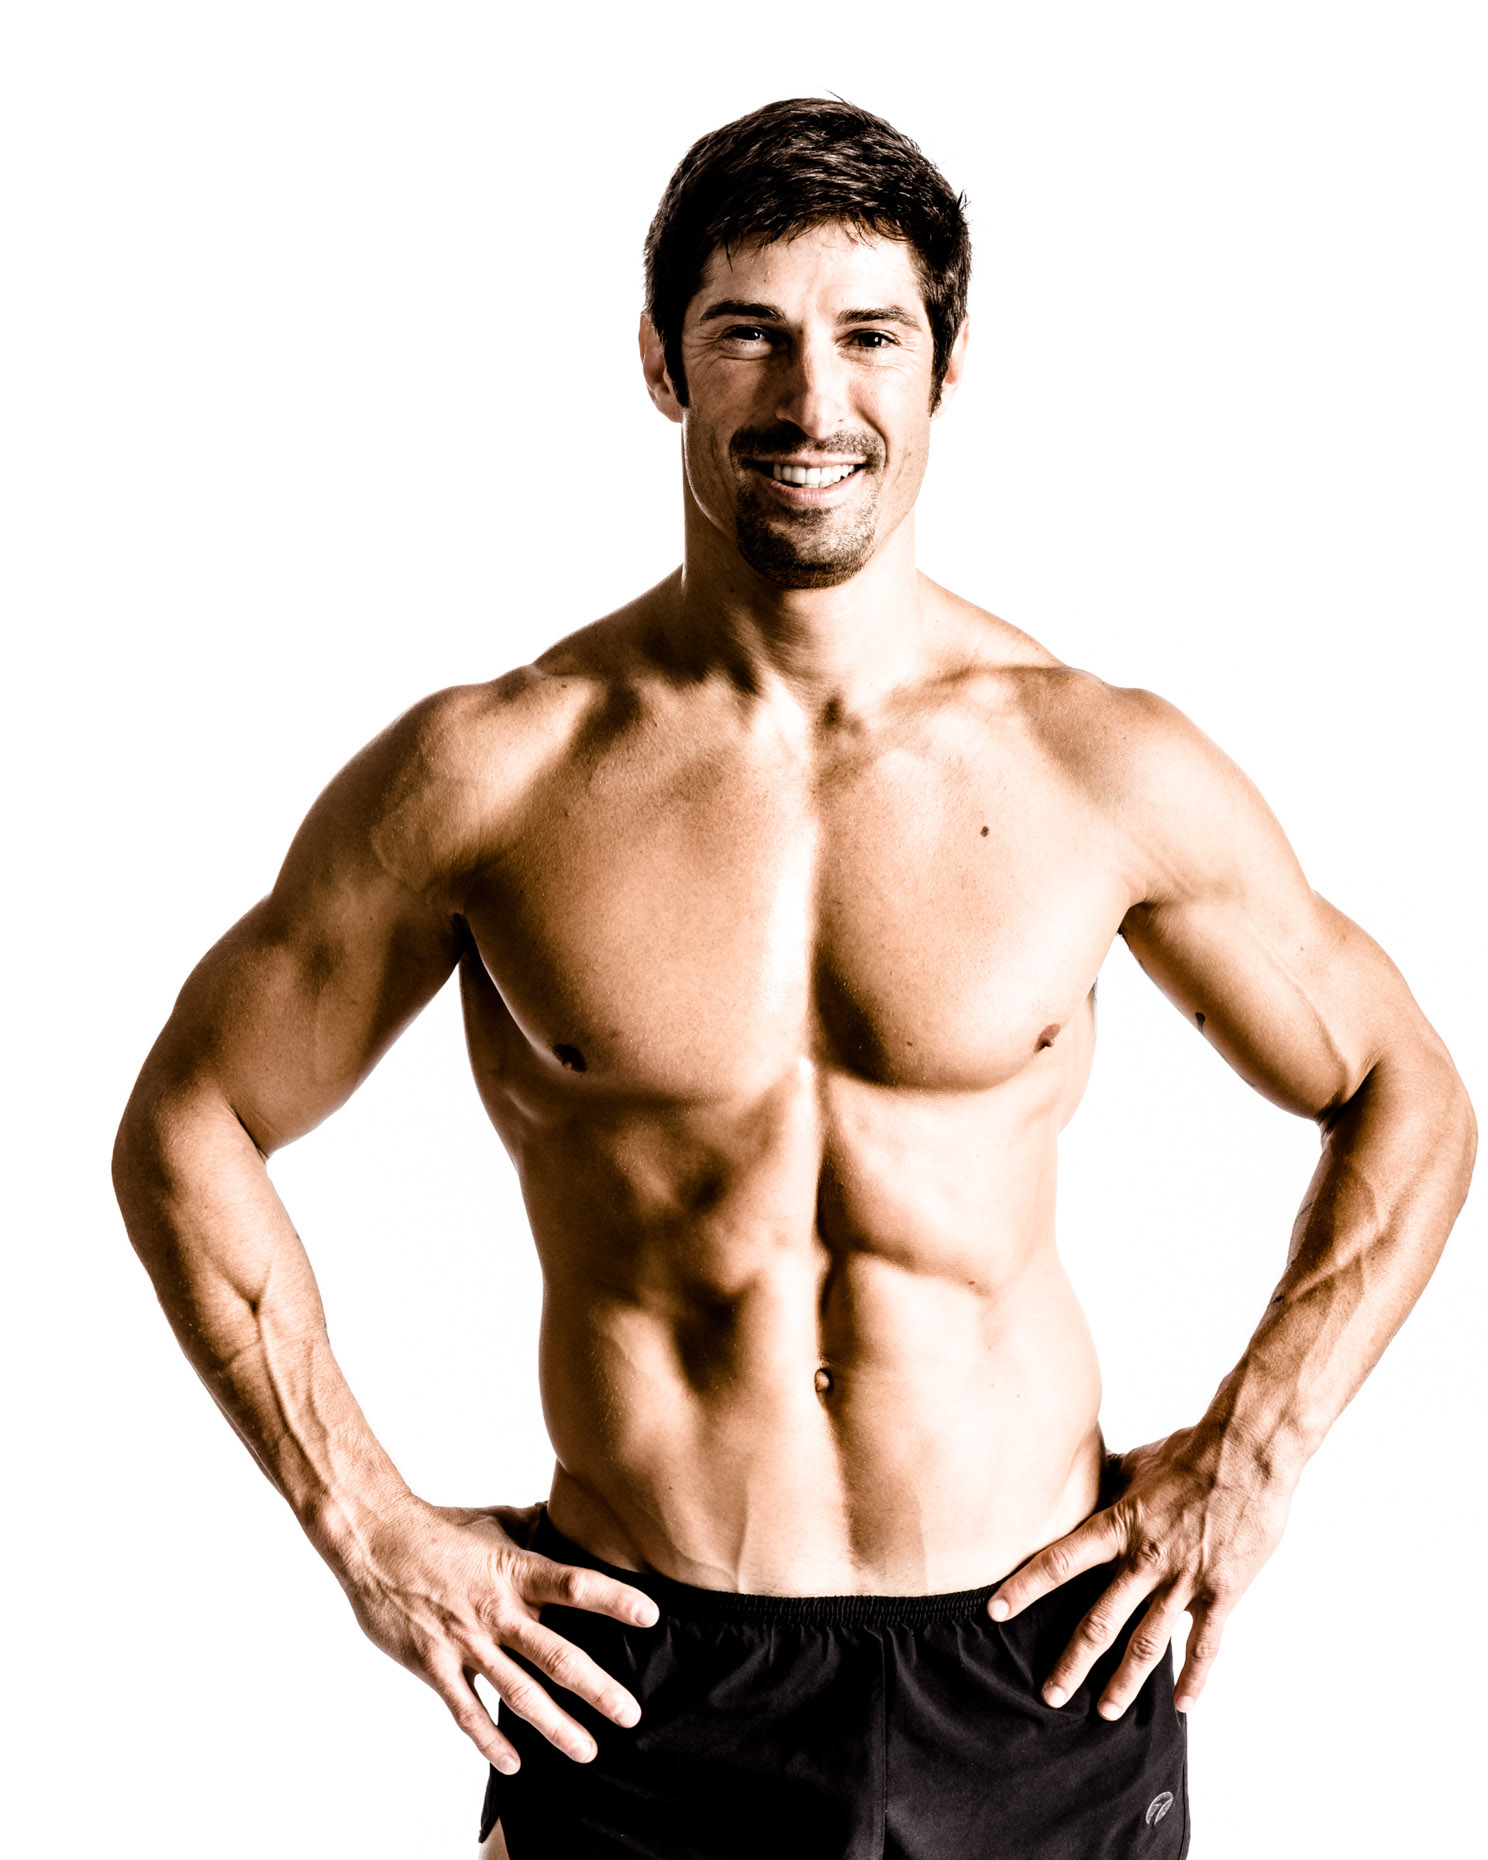 Rudy Reyes is a martial arts instructor, actor and fitness ambassador.